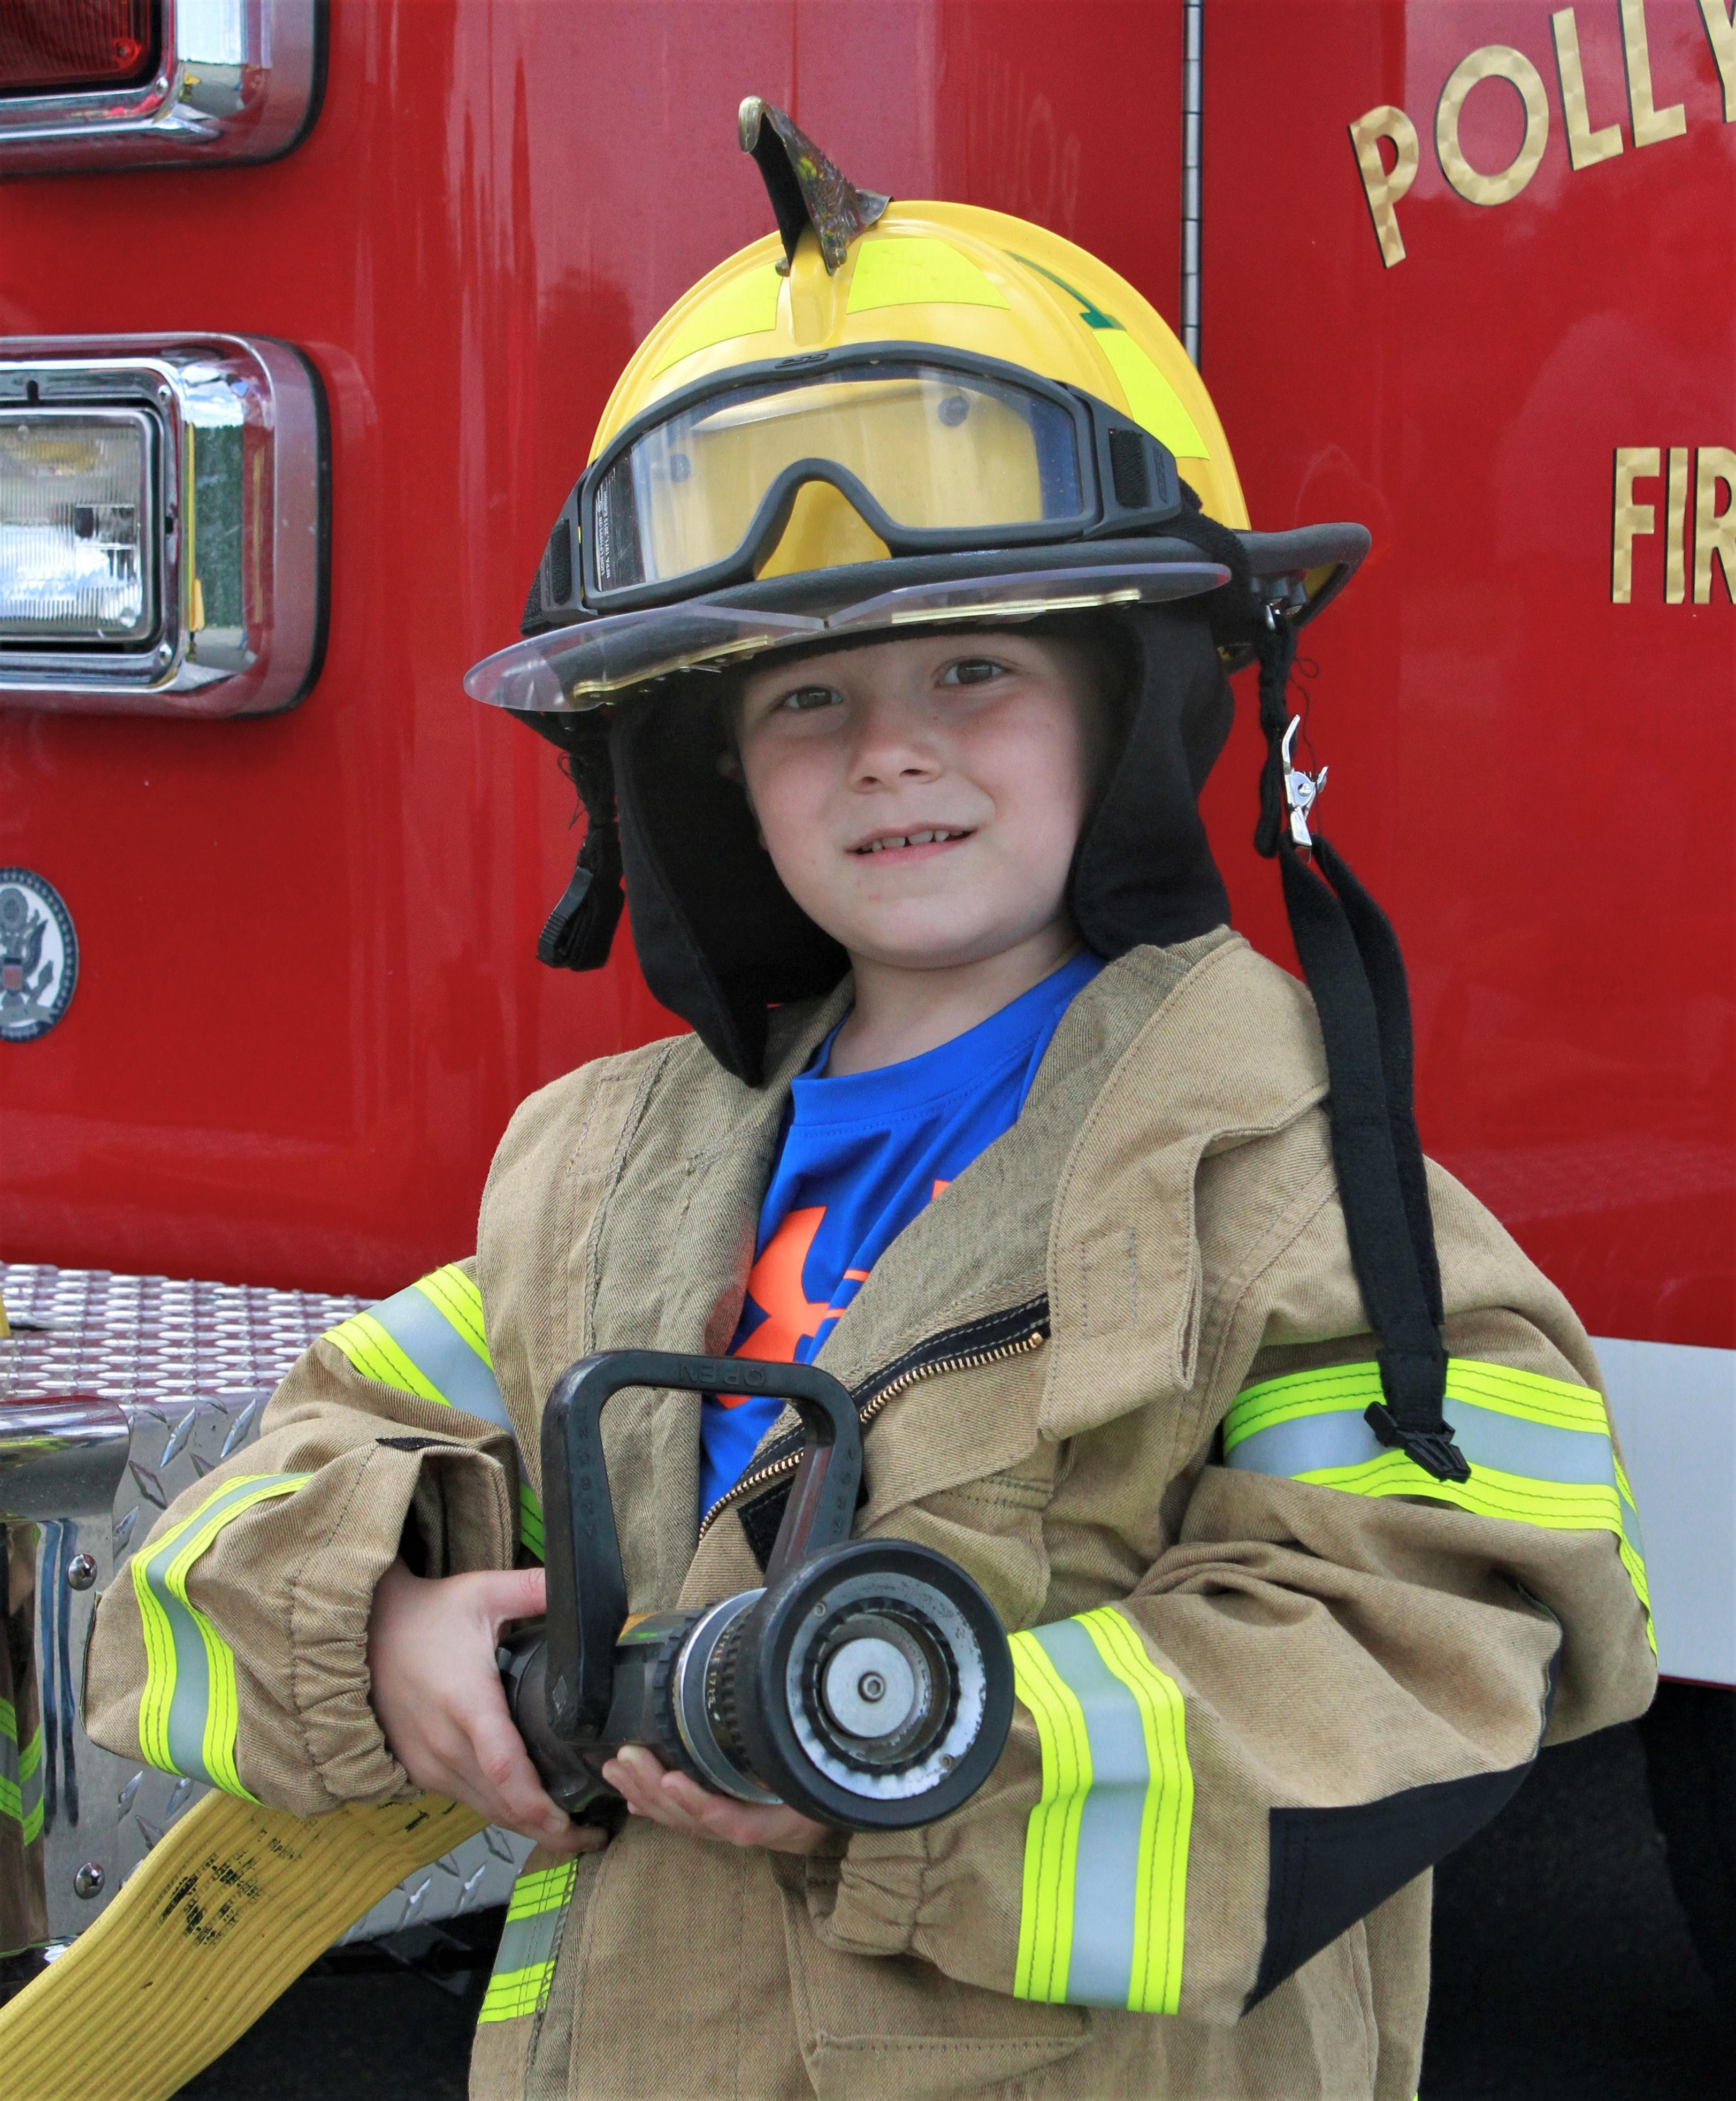 PIC OF THE DAY: Future Firefighter